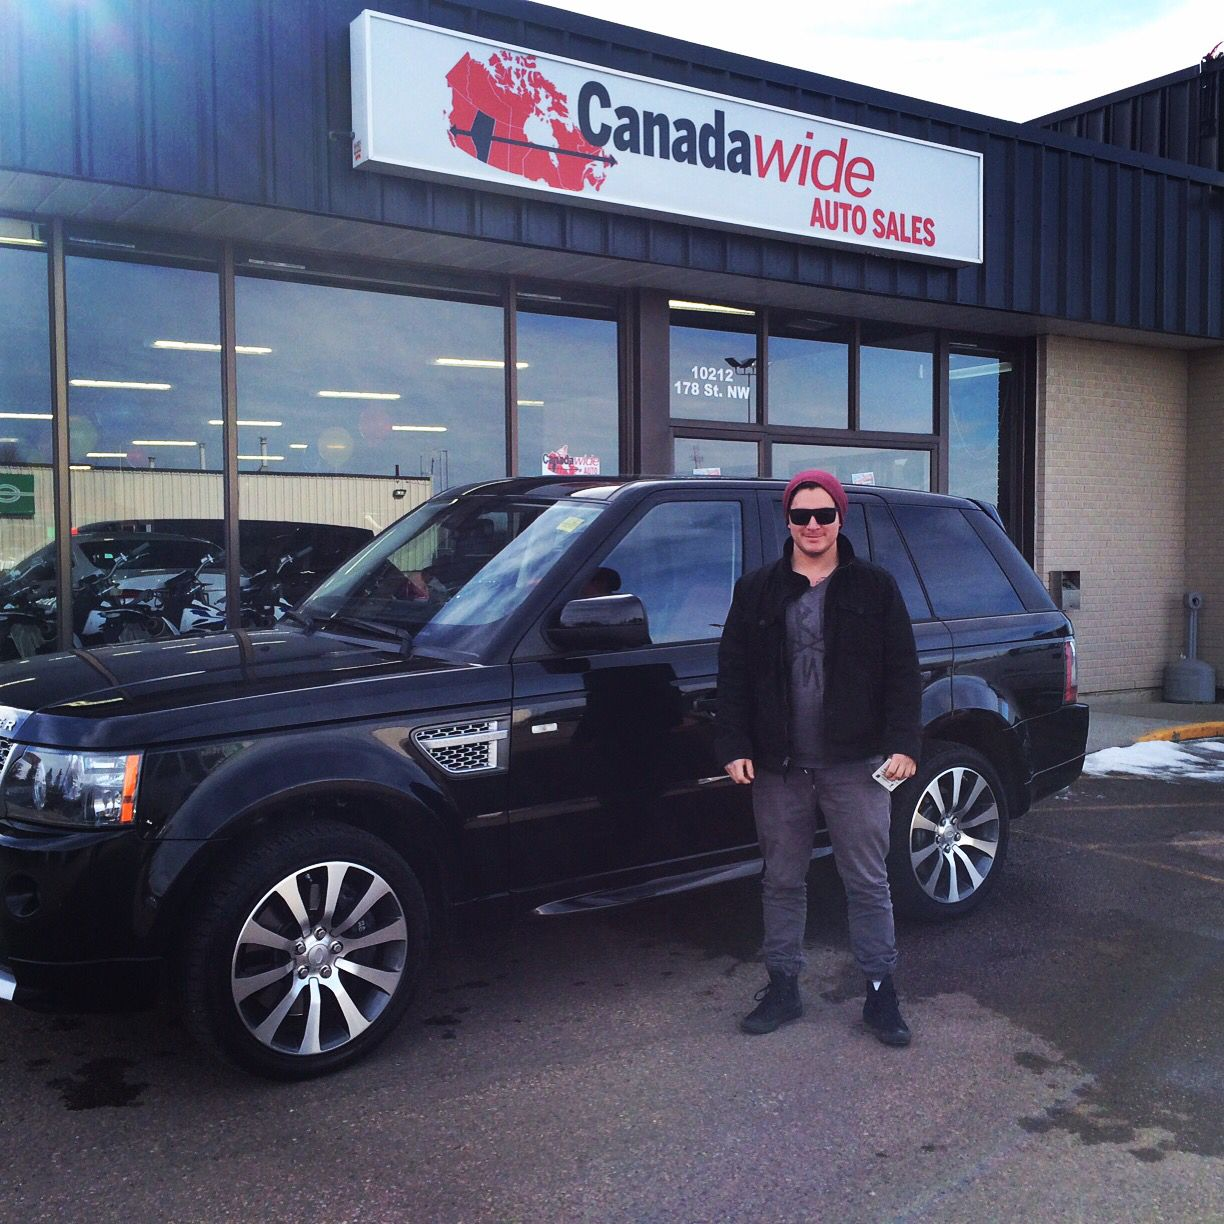 Congrats to Brock on his new purchase here at Canadawide